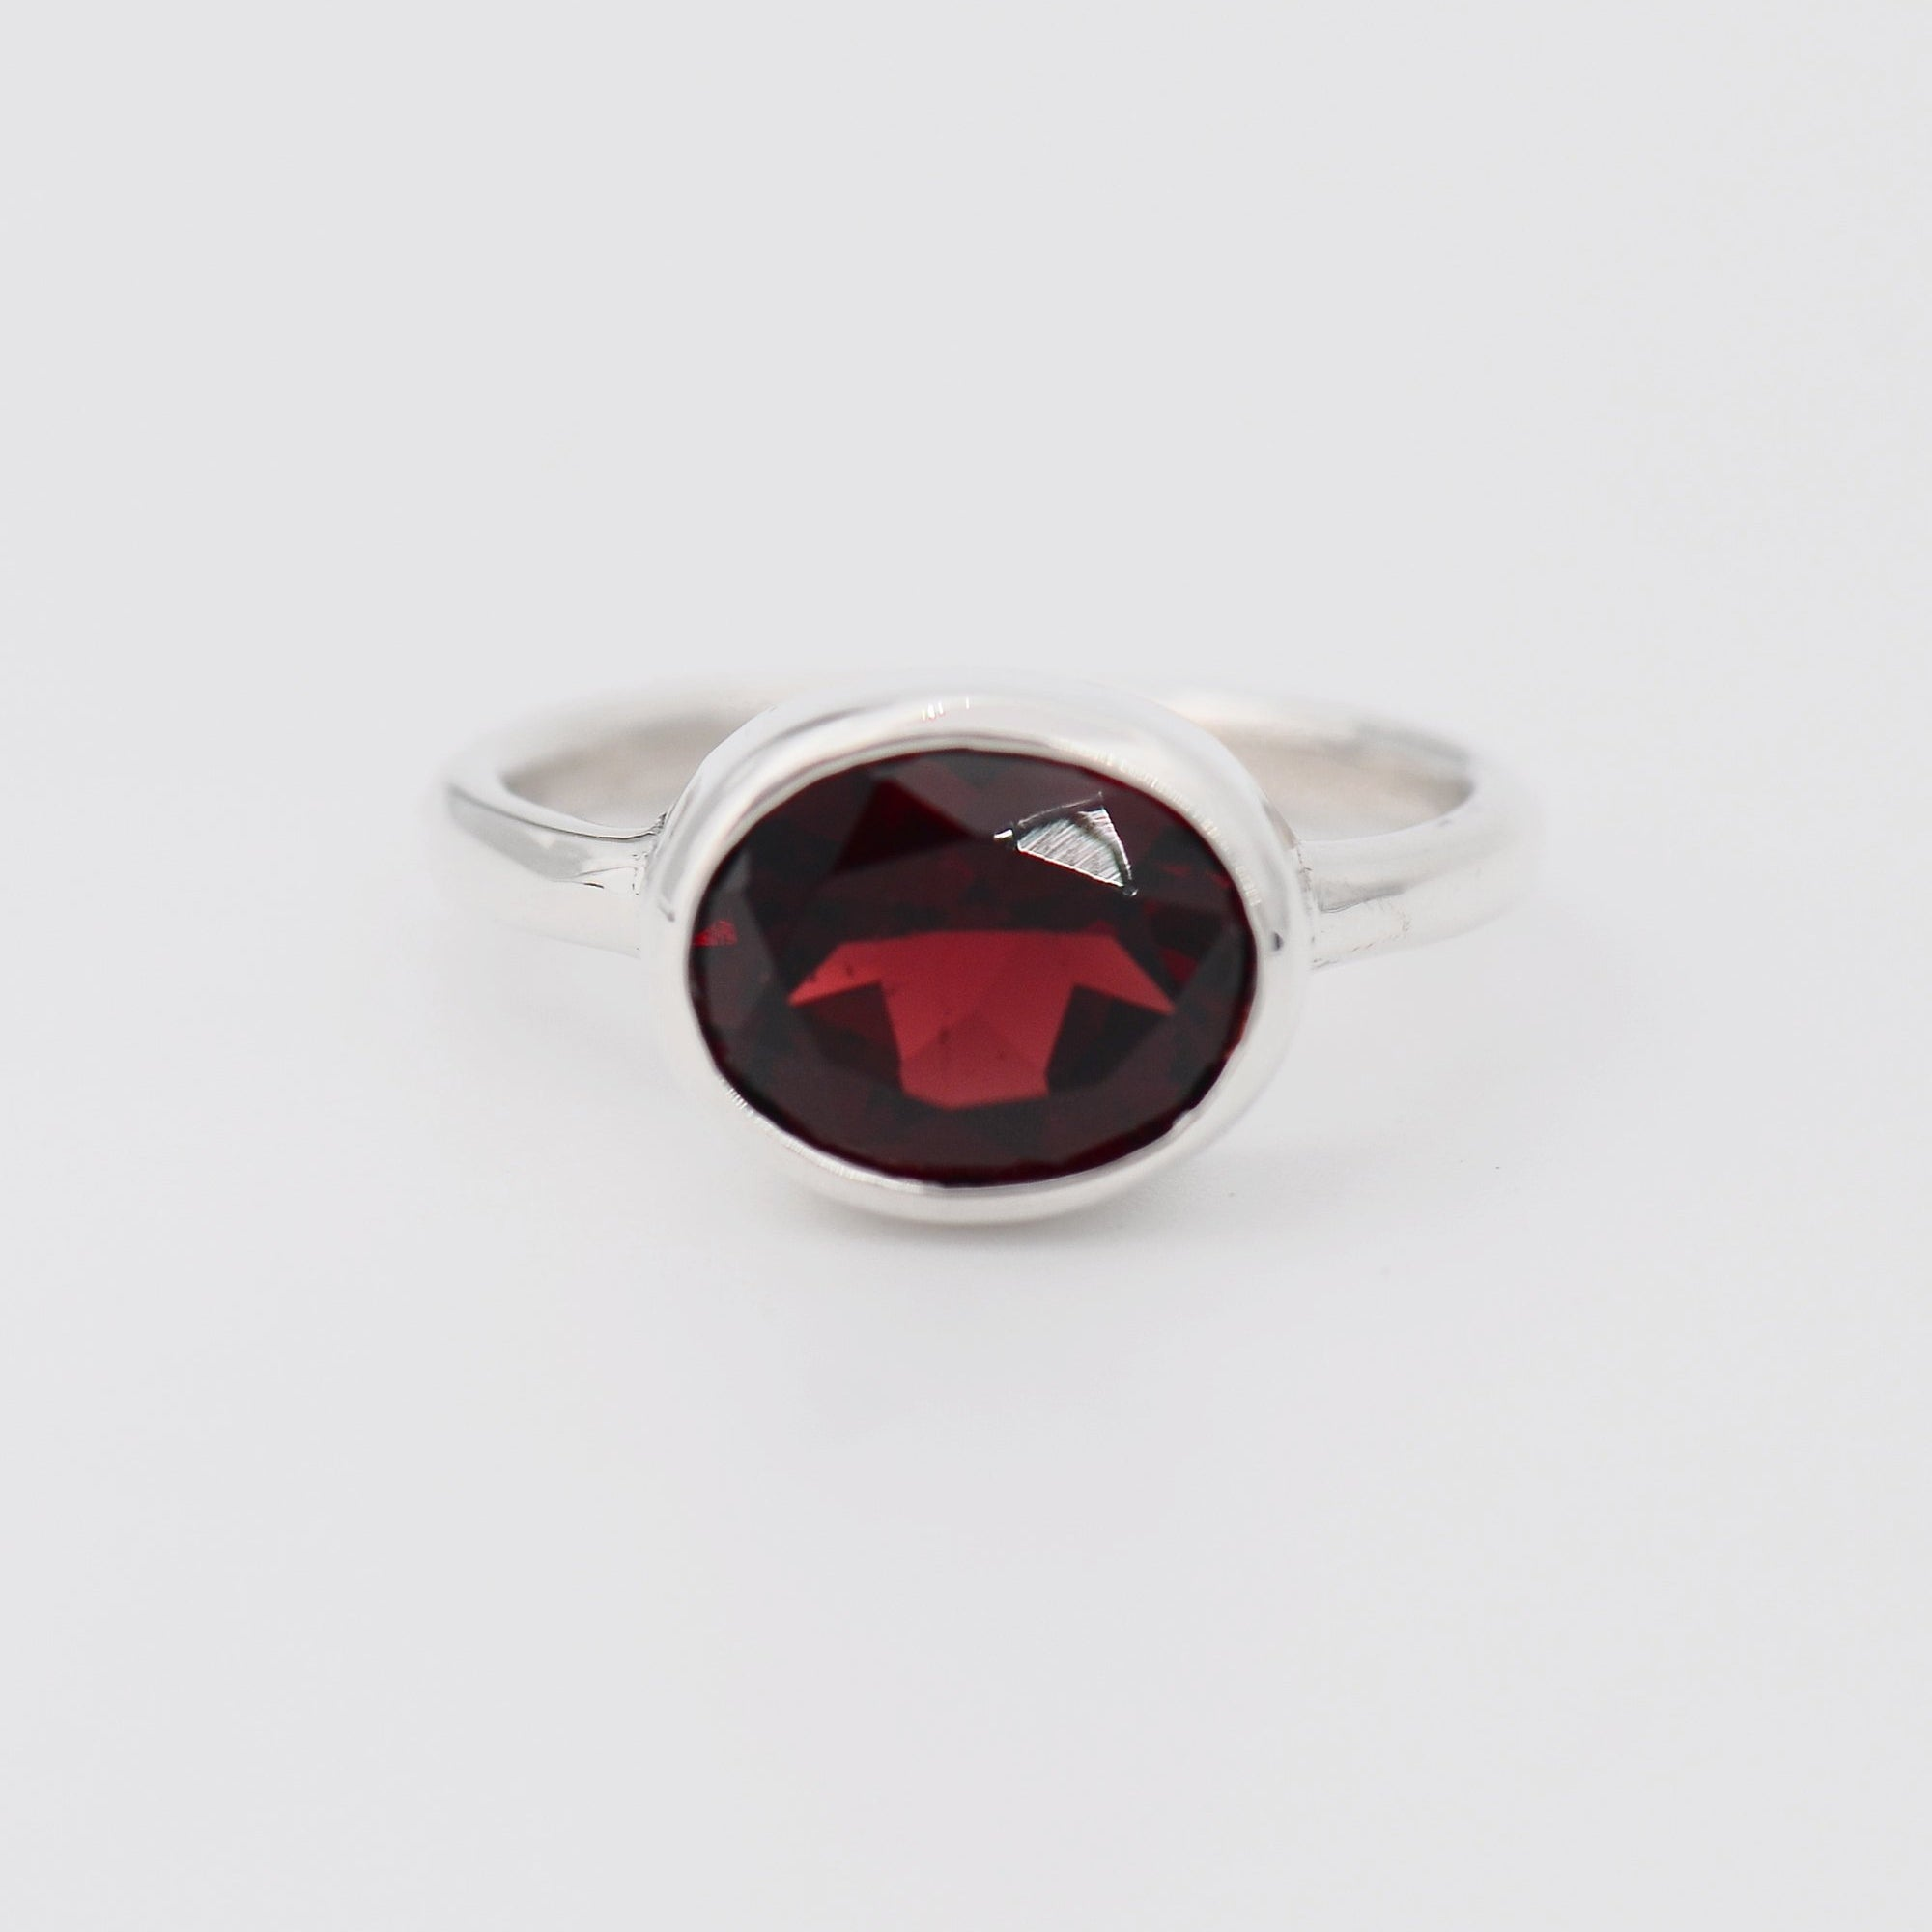 January Birthstone ring, Garnet ring, Stacking rings, Sterling silver gemstone ring, Oval shape Gemstone ring, Ring gift for her